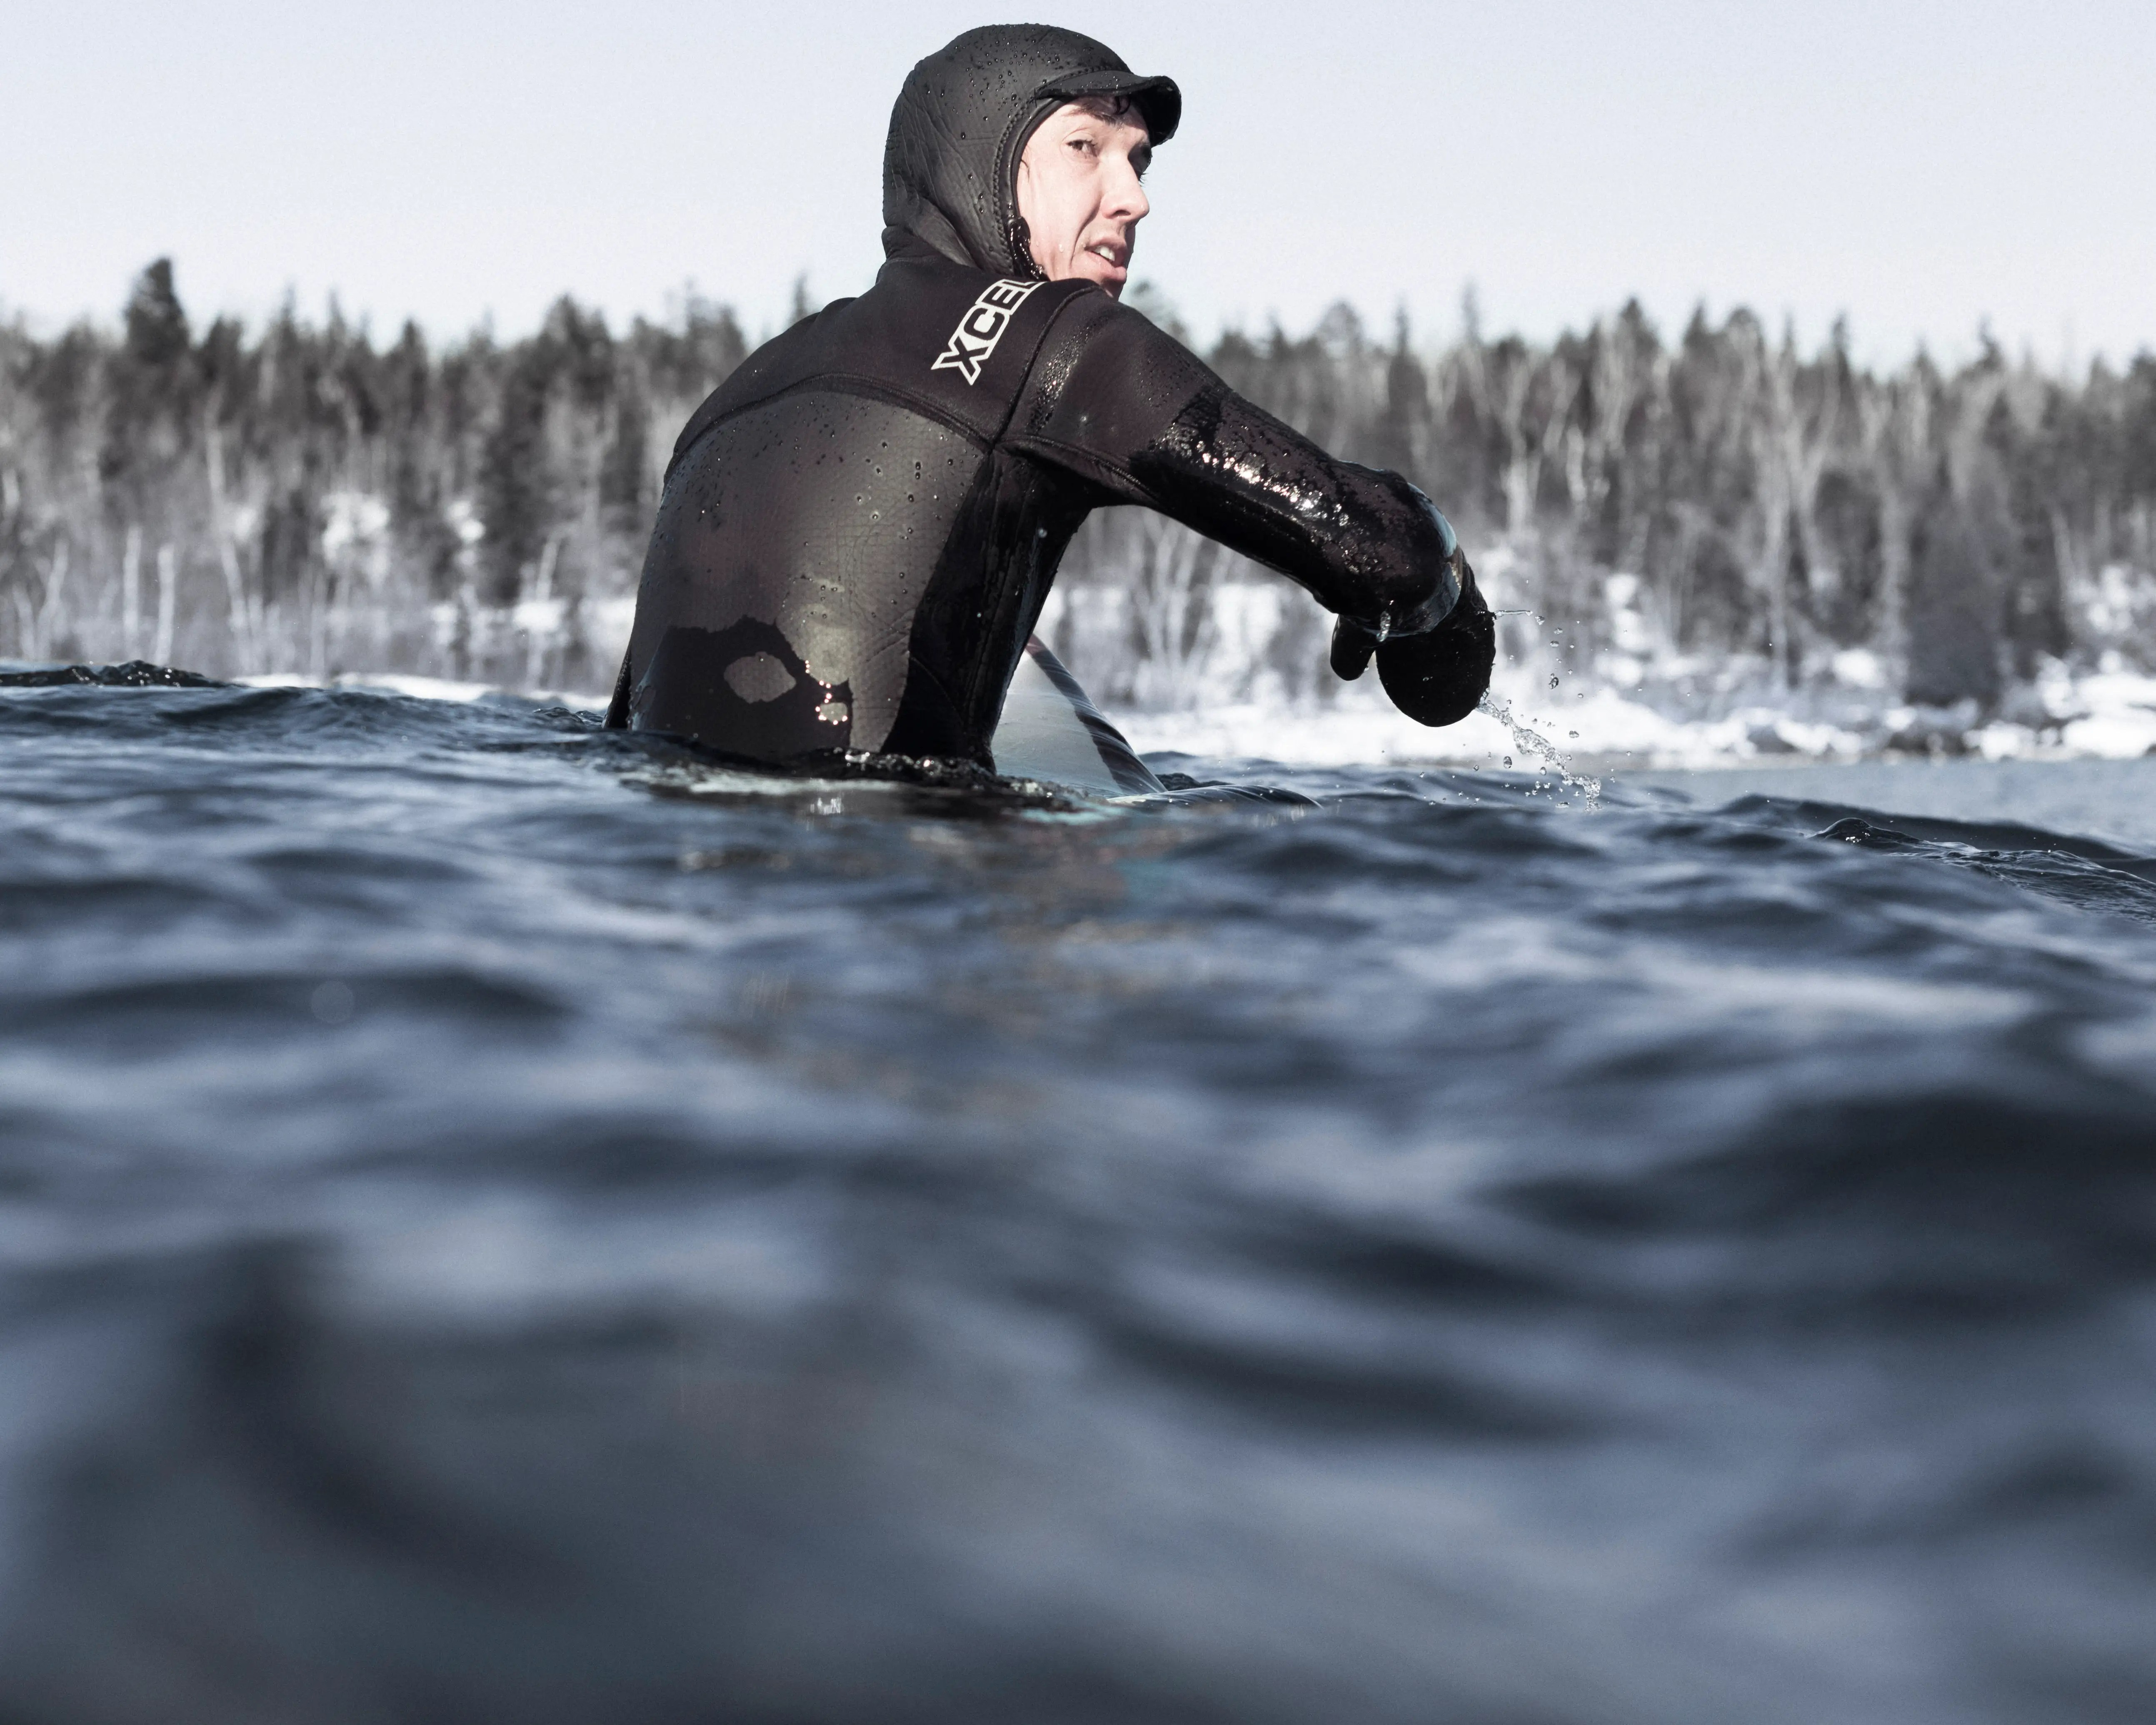 Most surfers wear the thickest type of wetsuit you can buy.